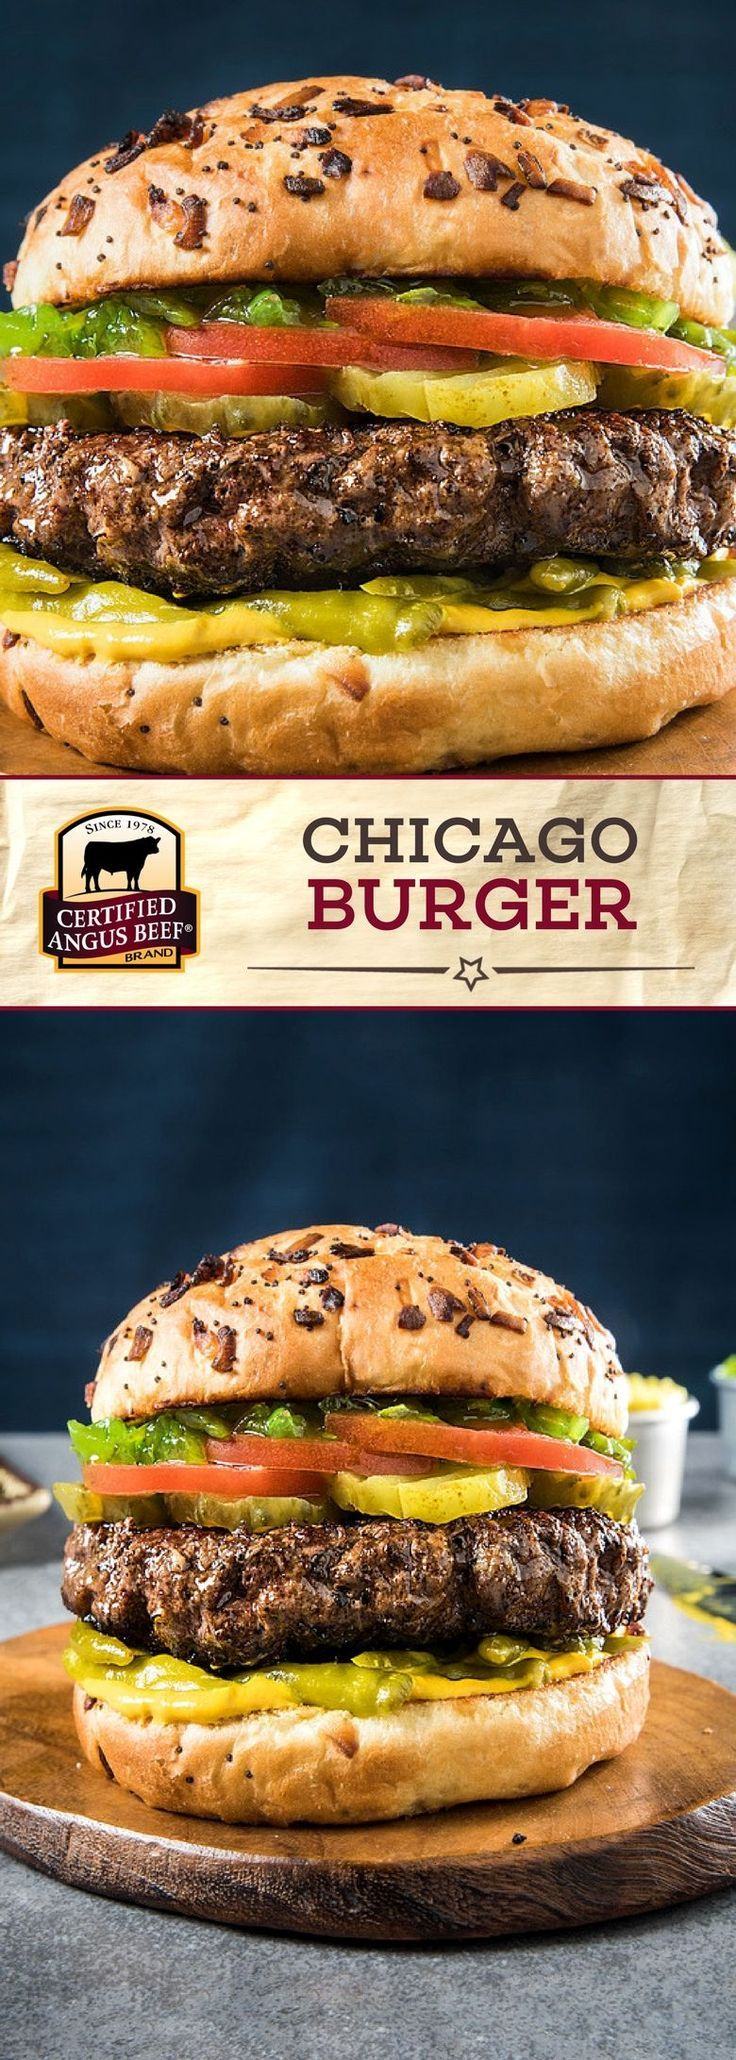 The Chicago Burger is a Certified Angus Beef®️️️ brand lean ground beef burger that is PACKED with flavor! The BEST ground beef is mixed with celery salt and black pepper before being pan seared or grilled. Complete each burger with pickles, tomato, neon relish and onion and poppy seed buns for a DELICIOUS burger recipe! #bestangusbeef #certifiedangusbeef #beefrecipe #burgerrecipe